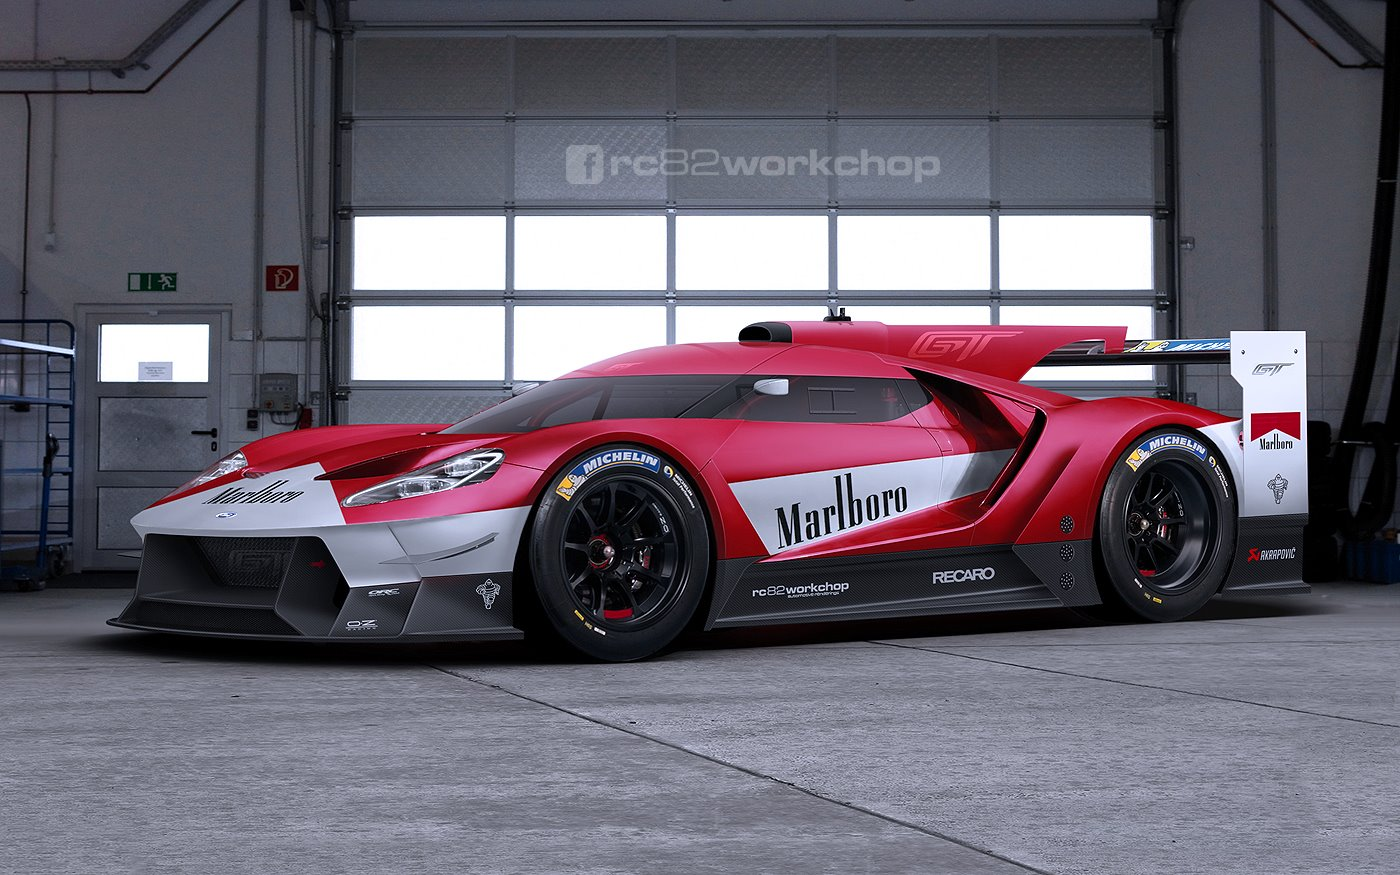 The New Gt Meet A Marlboro Color Scheme What Do You Think And Also What Kind Of Scheme Would You Like To See On The Gt